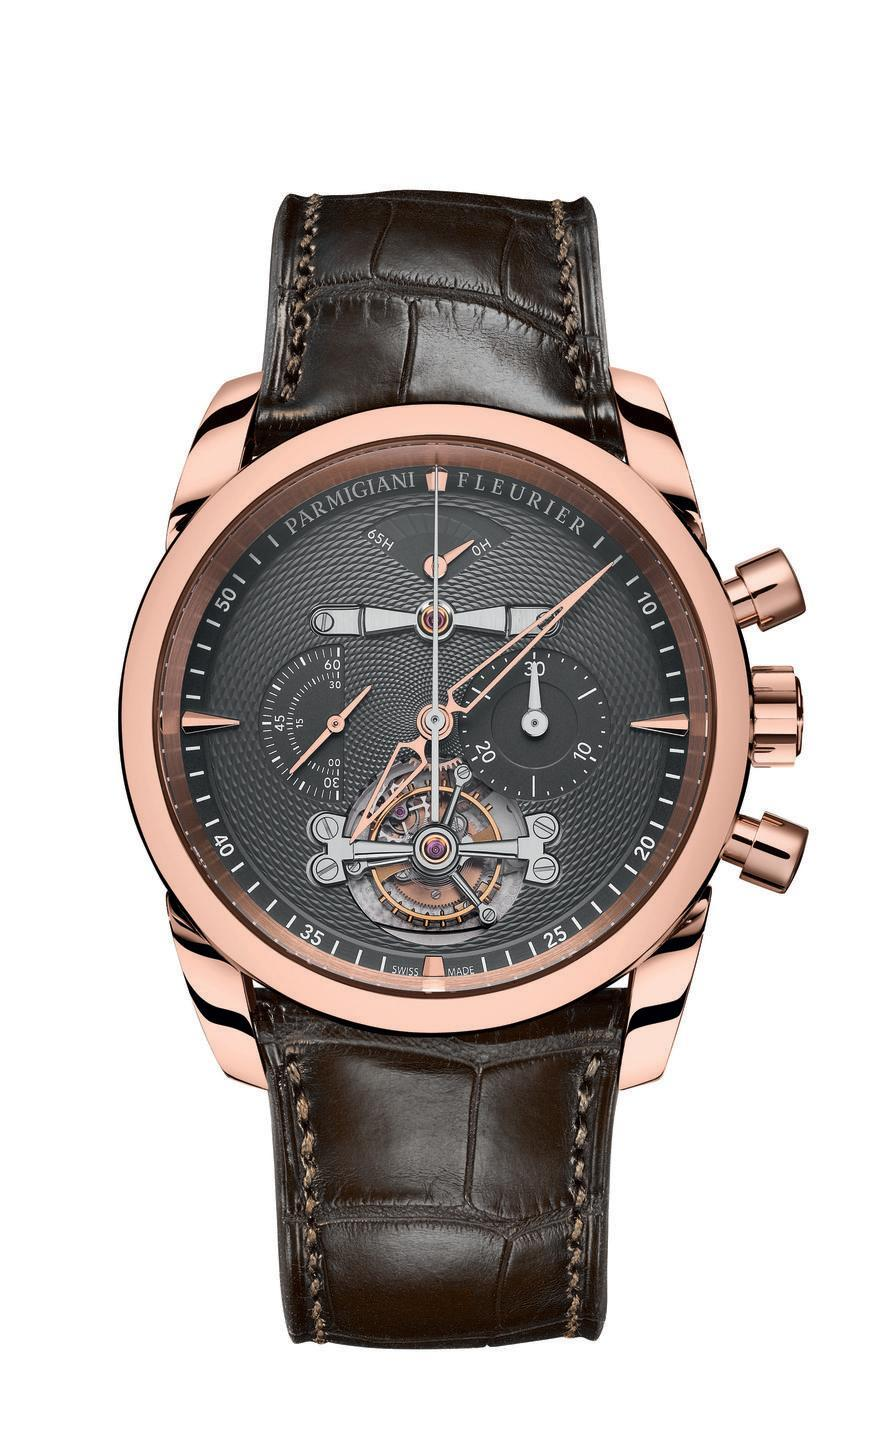 "<p>Master watchmaker Michel Parmigiani creates artistically beautiful timepieces both inside and out. The new rose gold Tondagraphe Tourbillon features a slate-color dial decorated with traditional <em>grain de riz</em> (French for grain of rice) guilloché artistry. It is powered by an extraordinary mechanical movement comprised of 295 components with a power reserve of 65 hours. The beauty of the decorated, hand-finished movement is visible through the sapphire crystal back. <em>($199,000)</em></p><p><a class=""link rapid-noclick-resp"" href=""https://www.parmigiani.com/en/watch/tonda/tondagraphe/pfh236-1000200-ha1241"" rel=""nofollow noopener"" target=""_blank"" data-ylk=""slk:Learn More"">Learn More</a></p>"